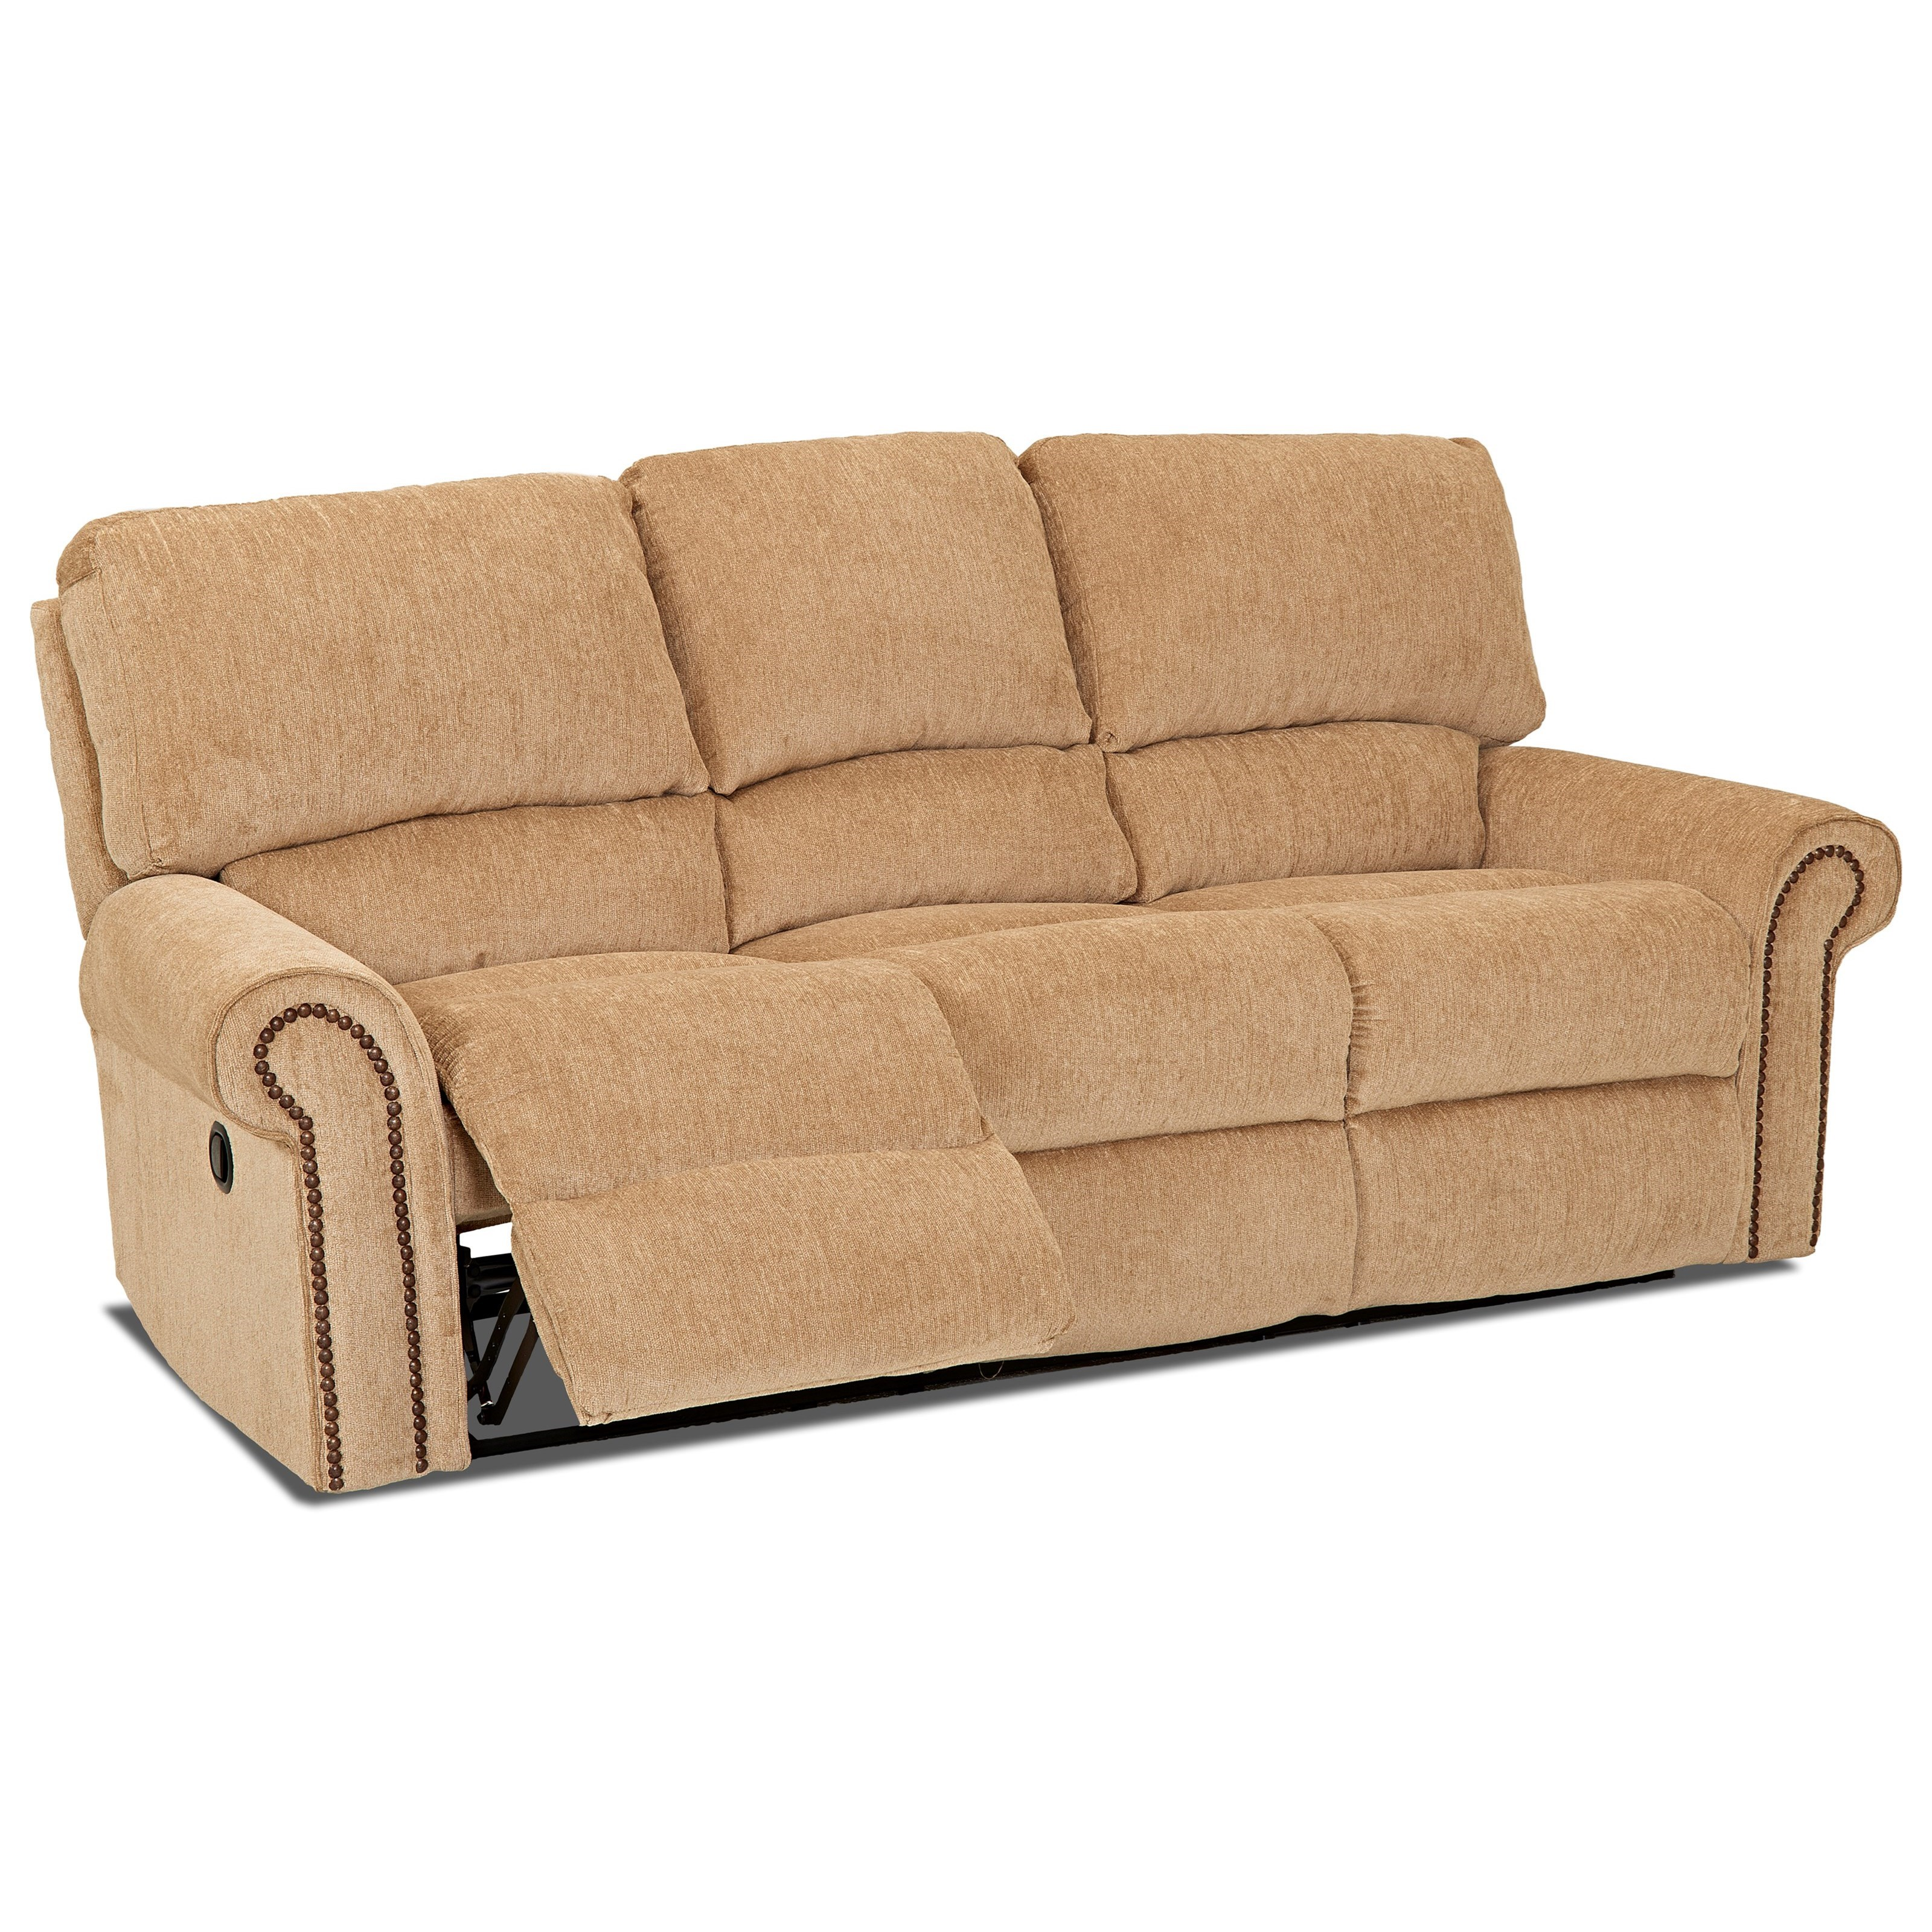 Klaussner Savannah Reclining Sofa With Rolled Arms And Nailheads Johnny Janosik Reclining Sofas